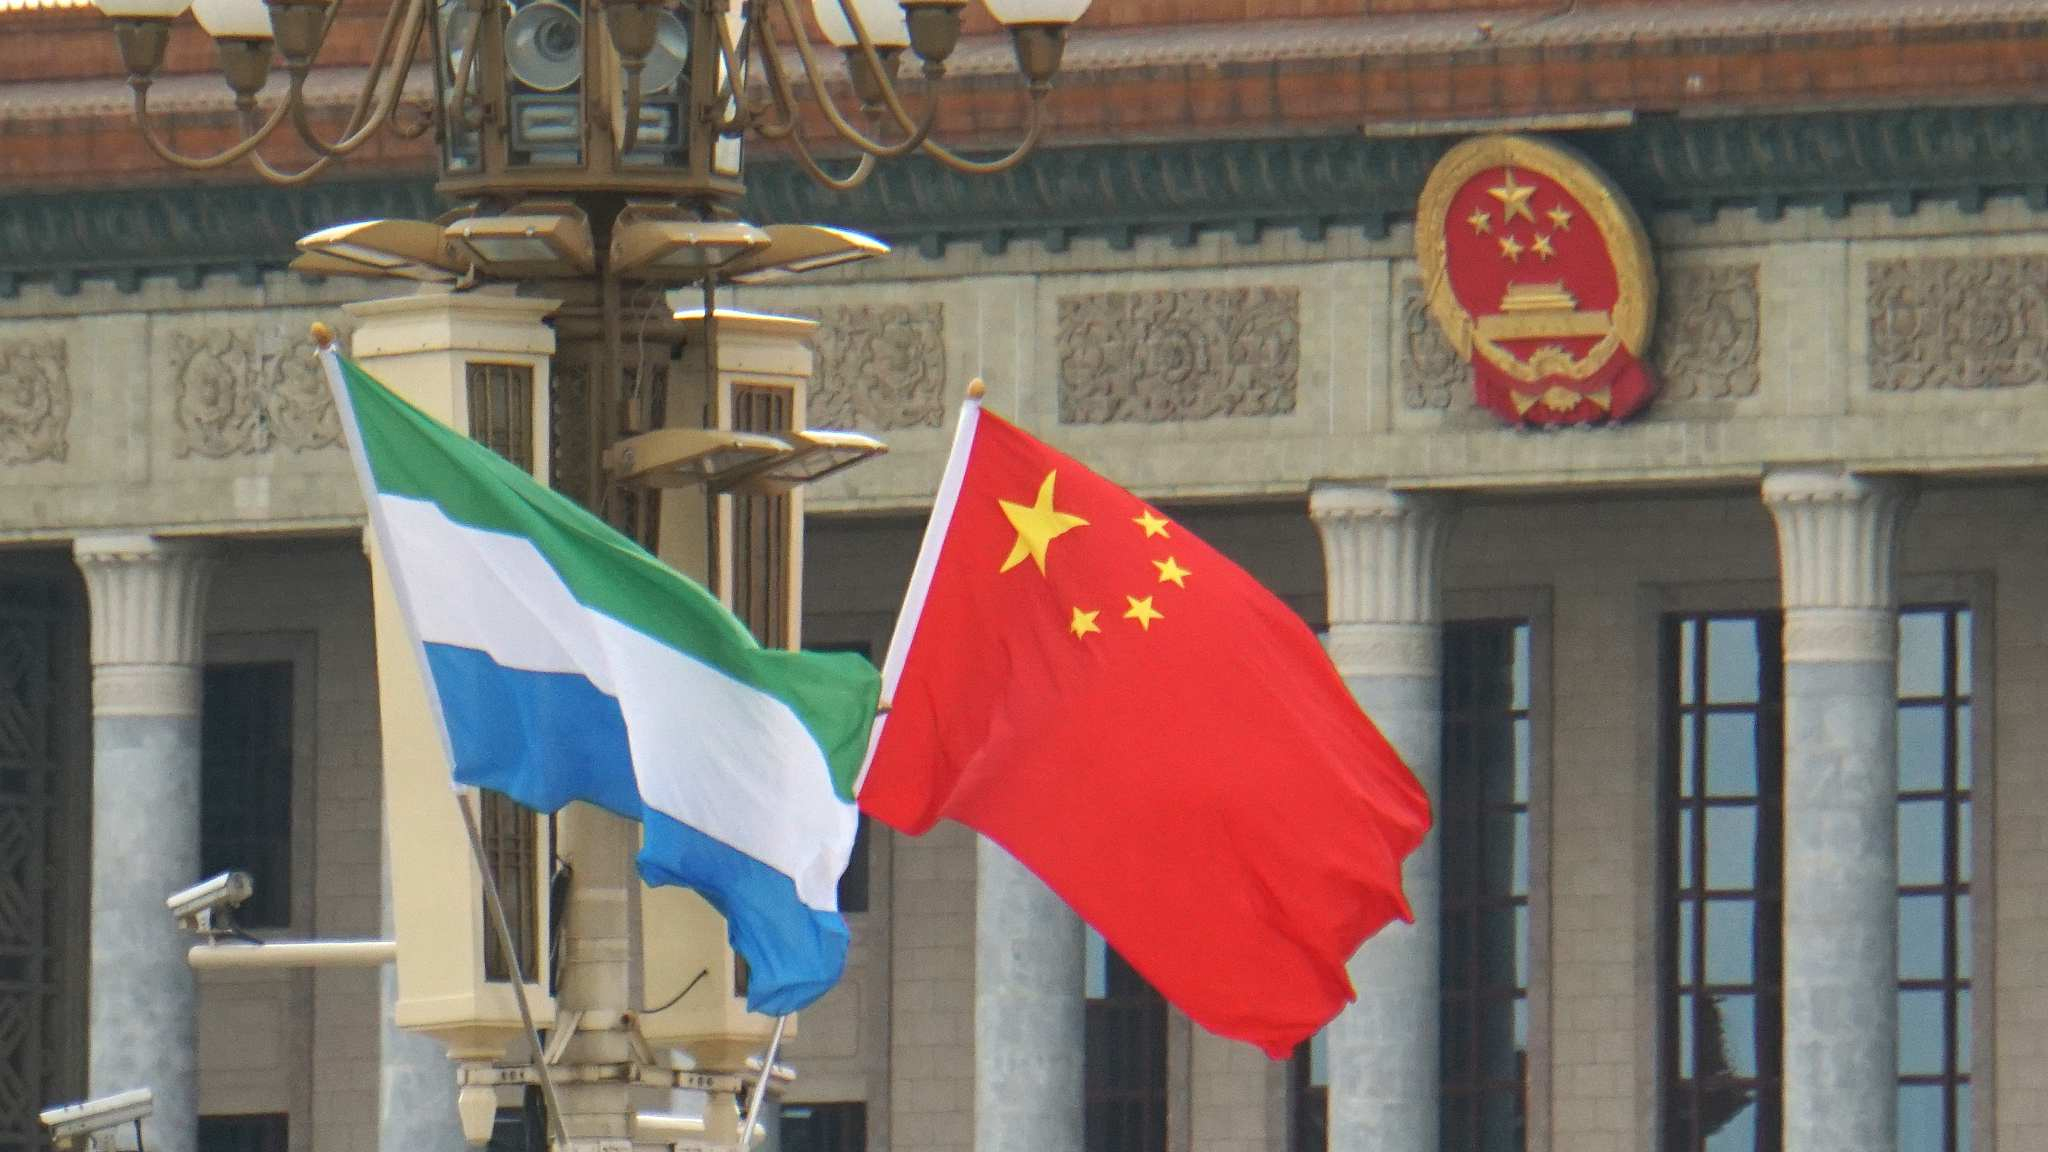 Friendly cooperation between China and Sierra Leone brings more benefits to the two peoples